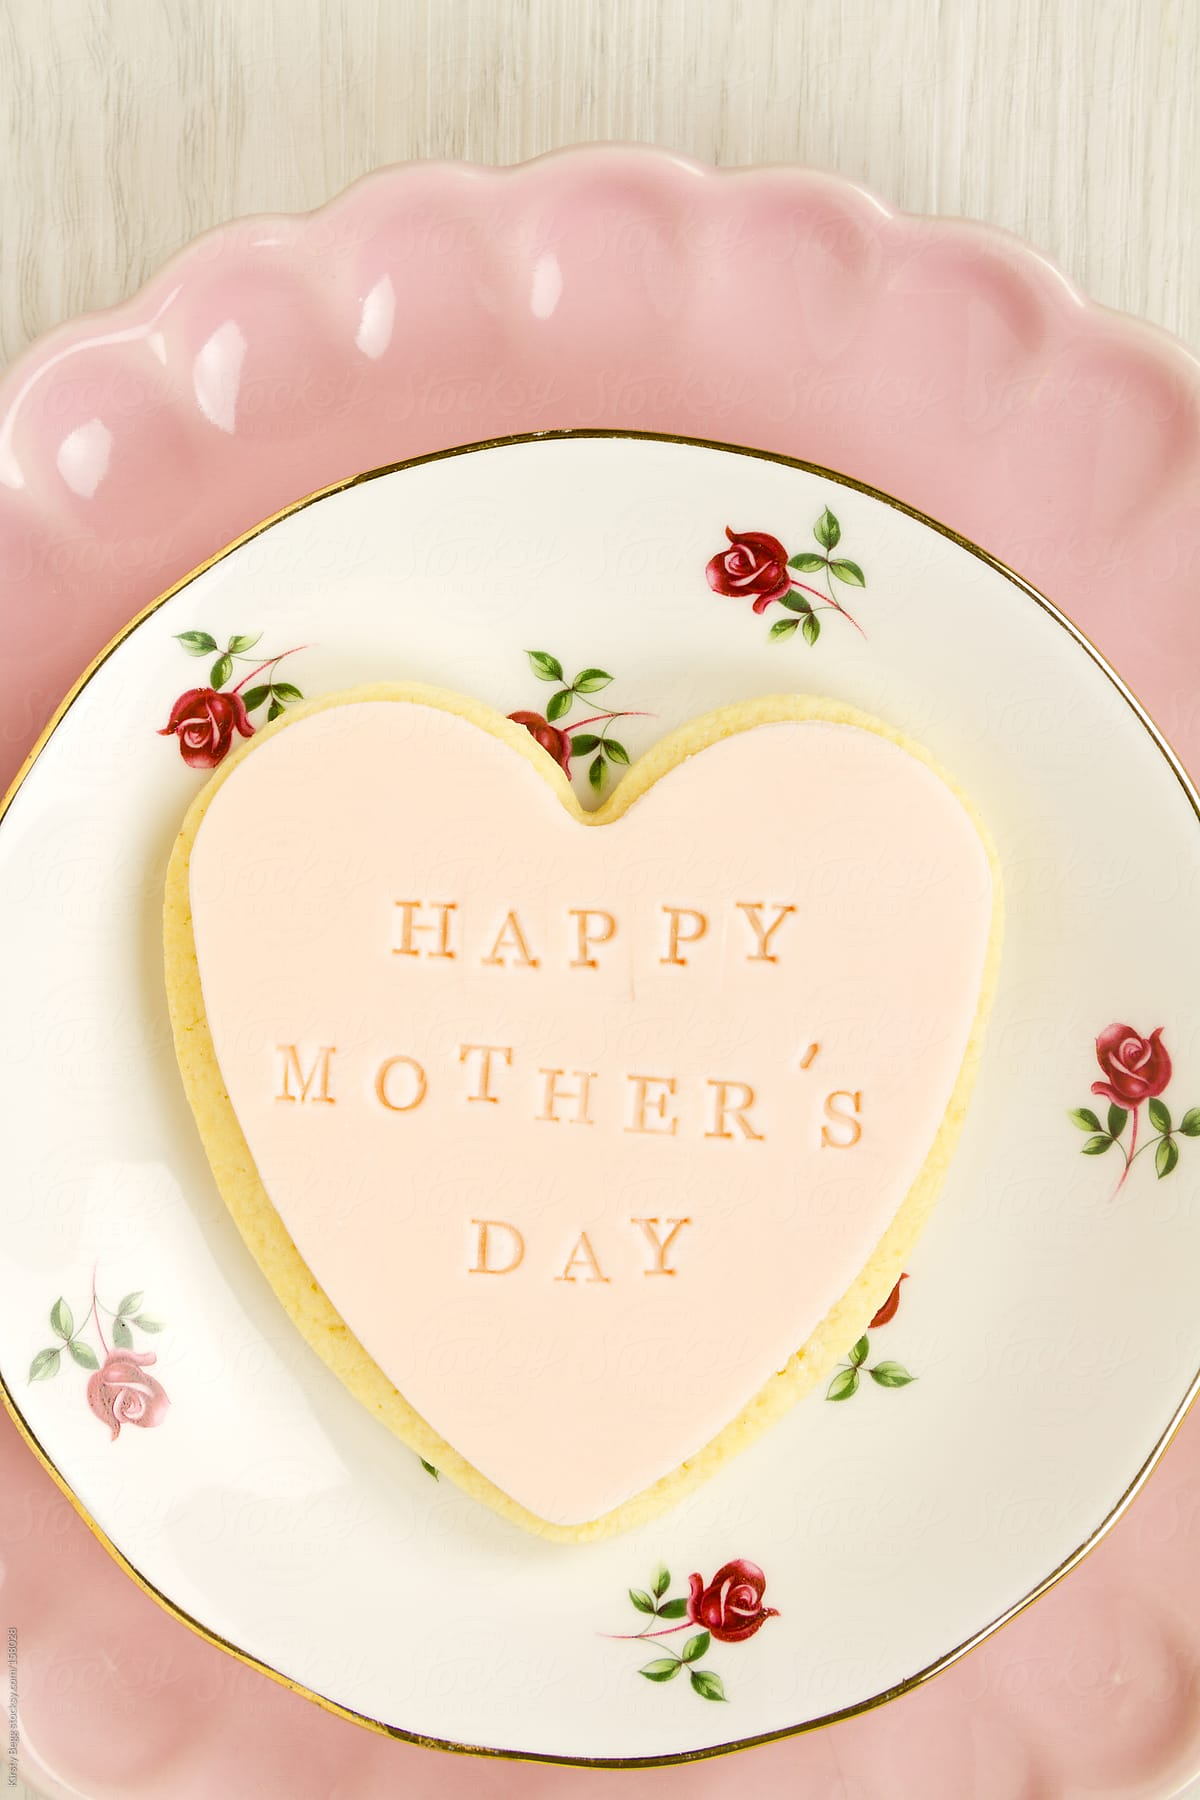 Happy Mother S Day Cookie By Kirsty Begg Stocksy United